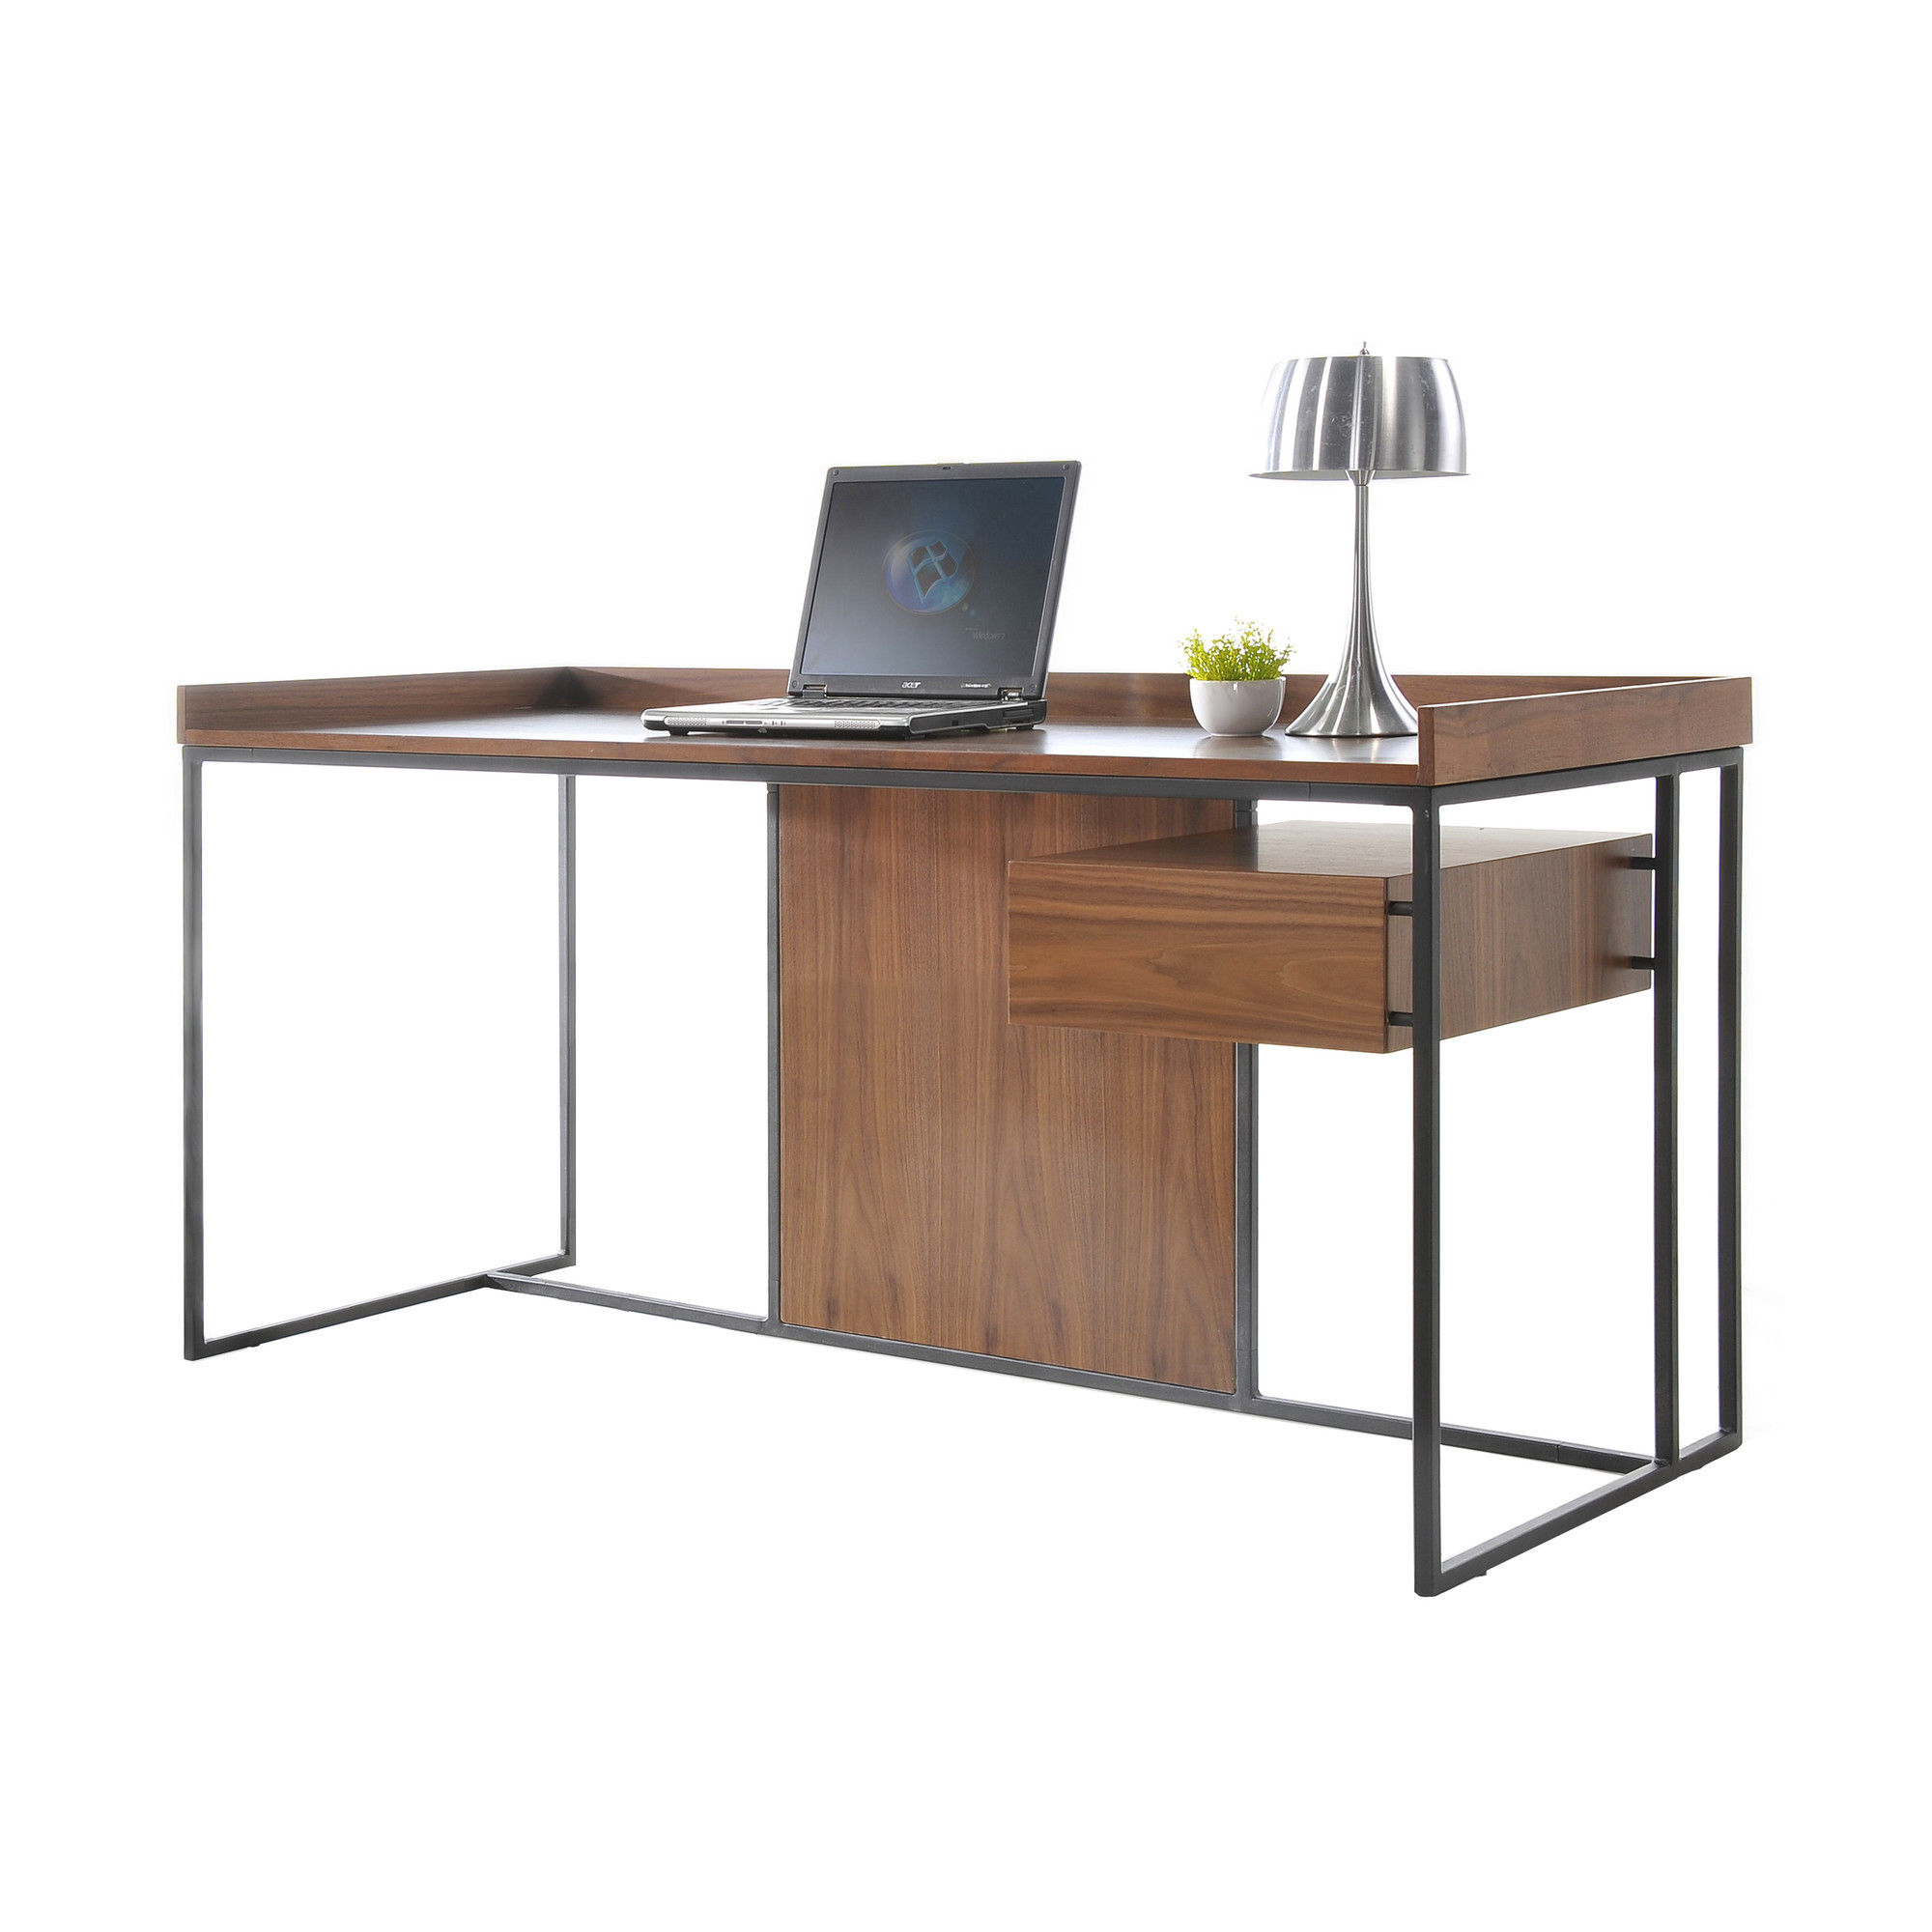 product wooden prod dominique s child bur contemporary d mathy desk bols sur bf